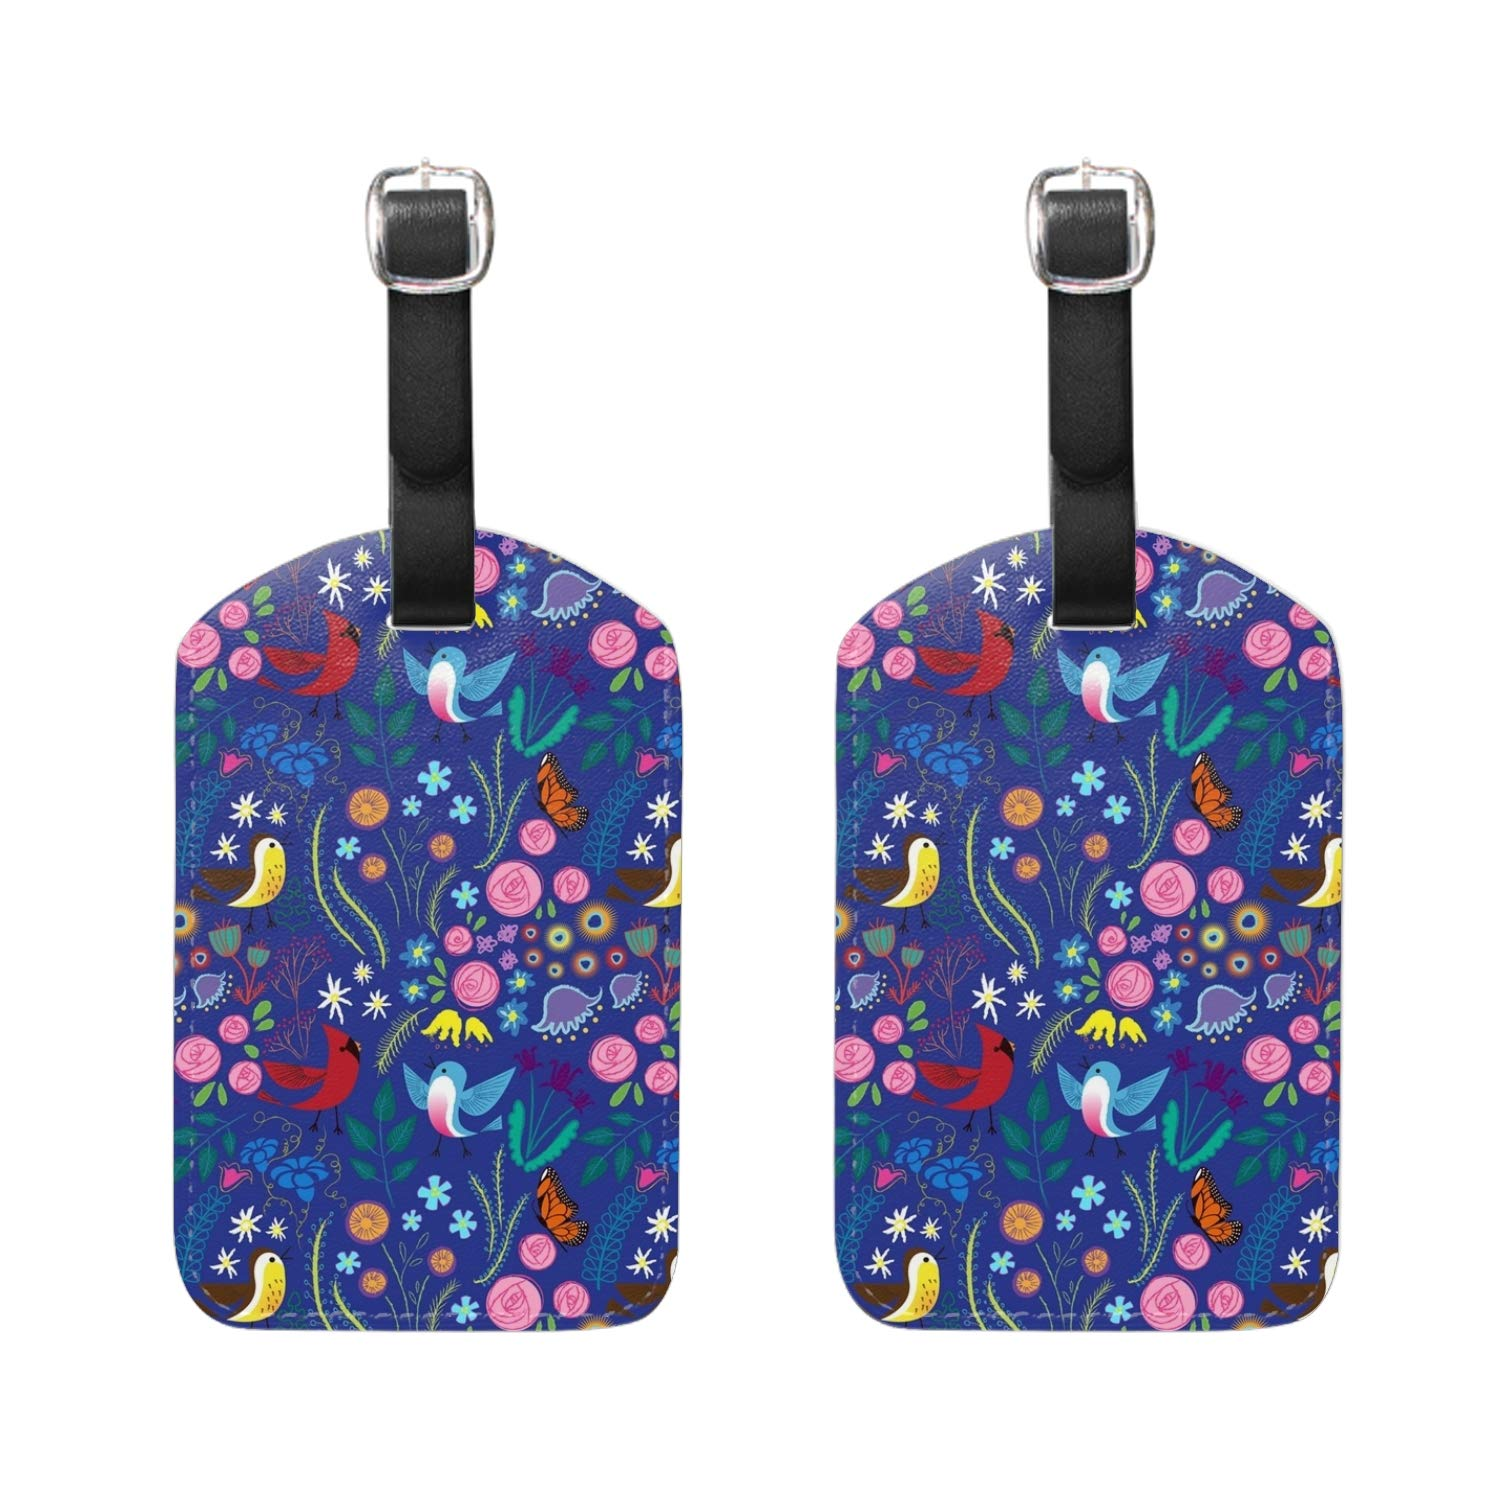 Sunflower Pack Baggage Suitcase Luggage Tags Travel Accessories Set of 2